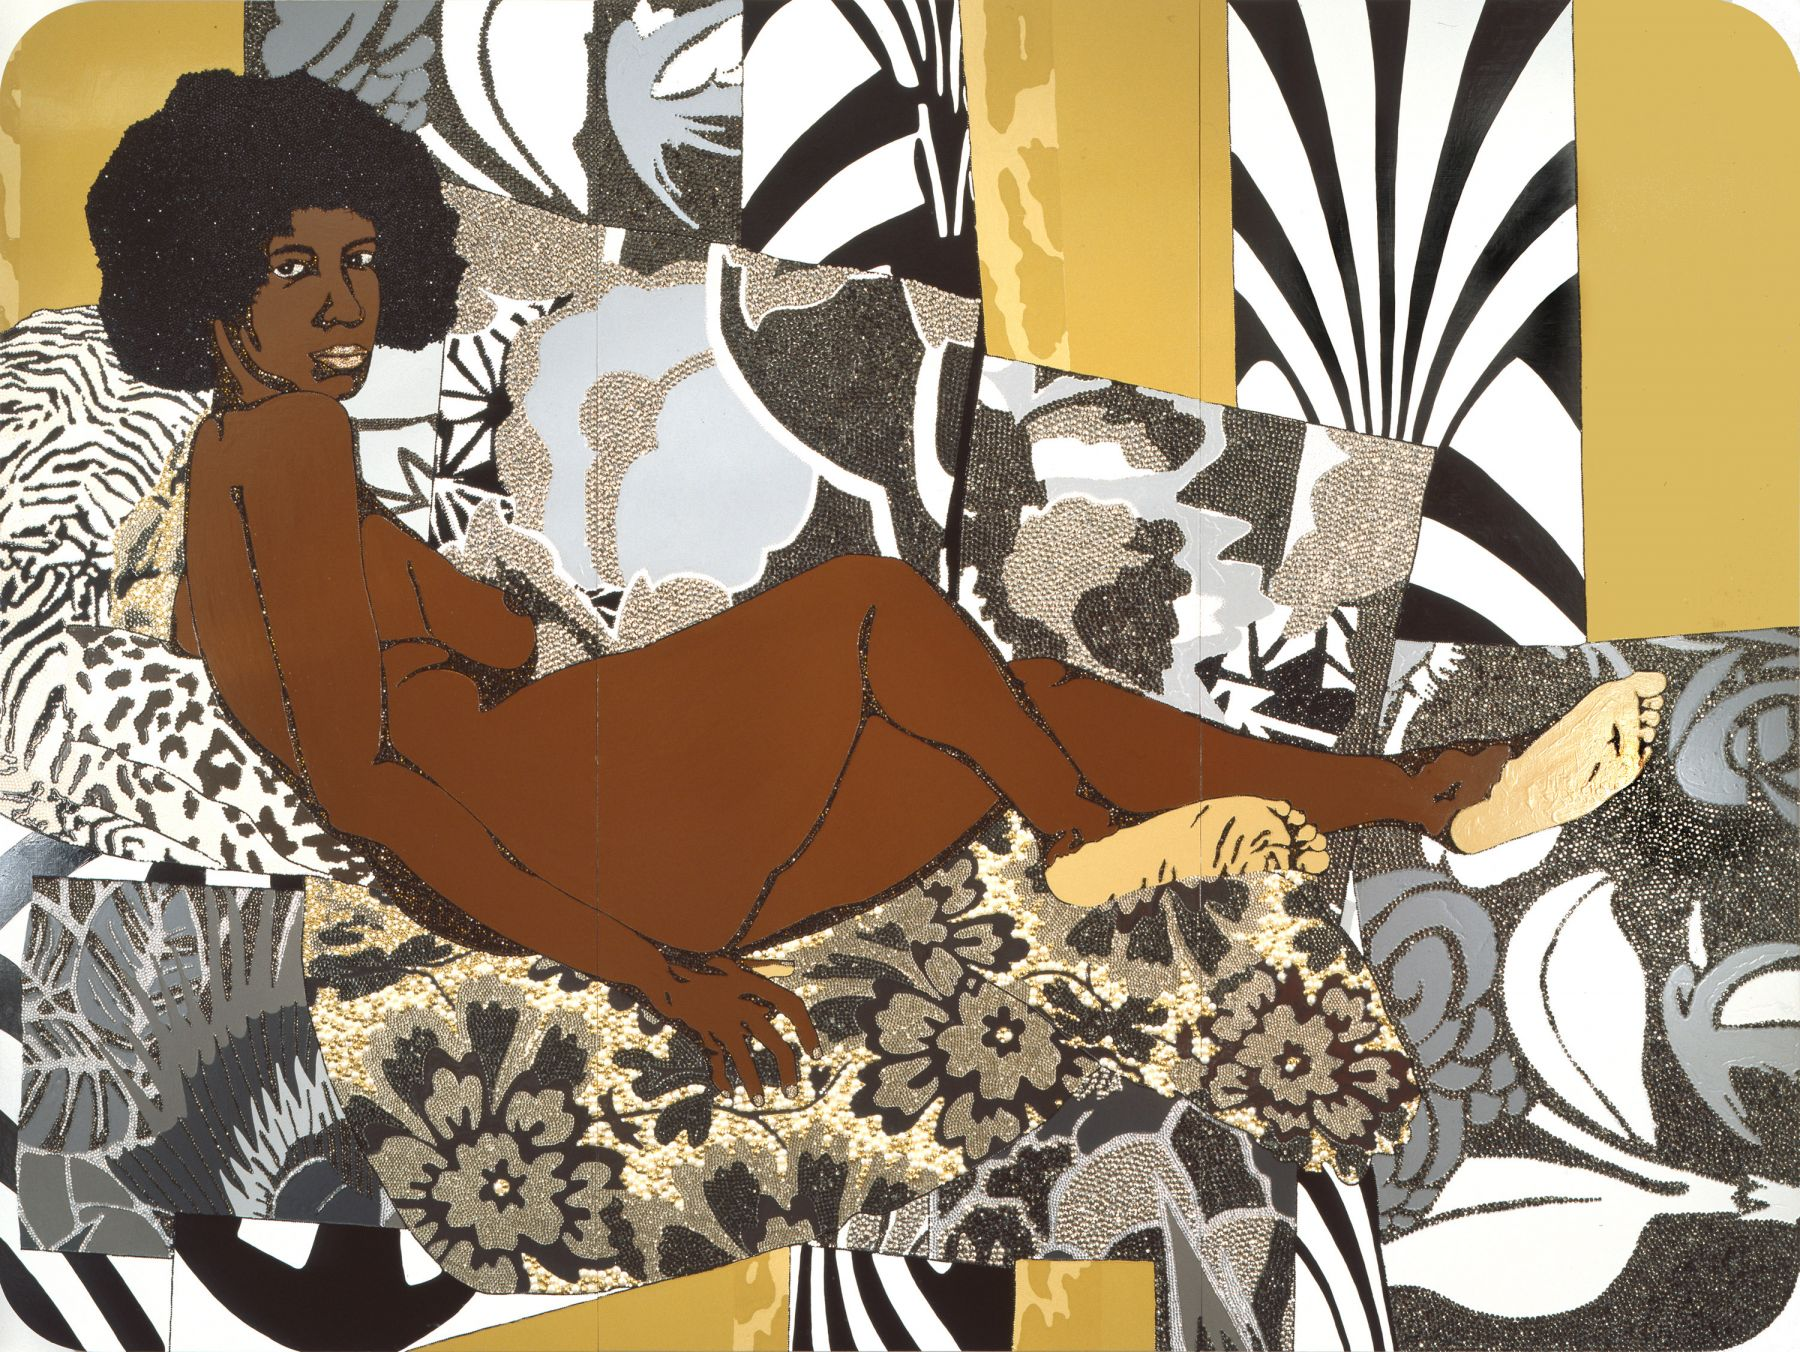 MICKALENE THOMAS A Little Taste Outside of Love, 2007